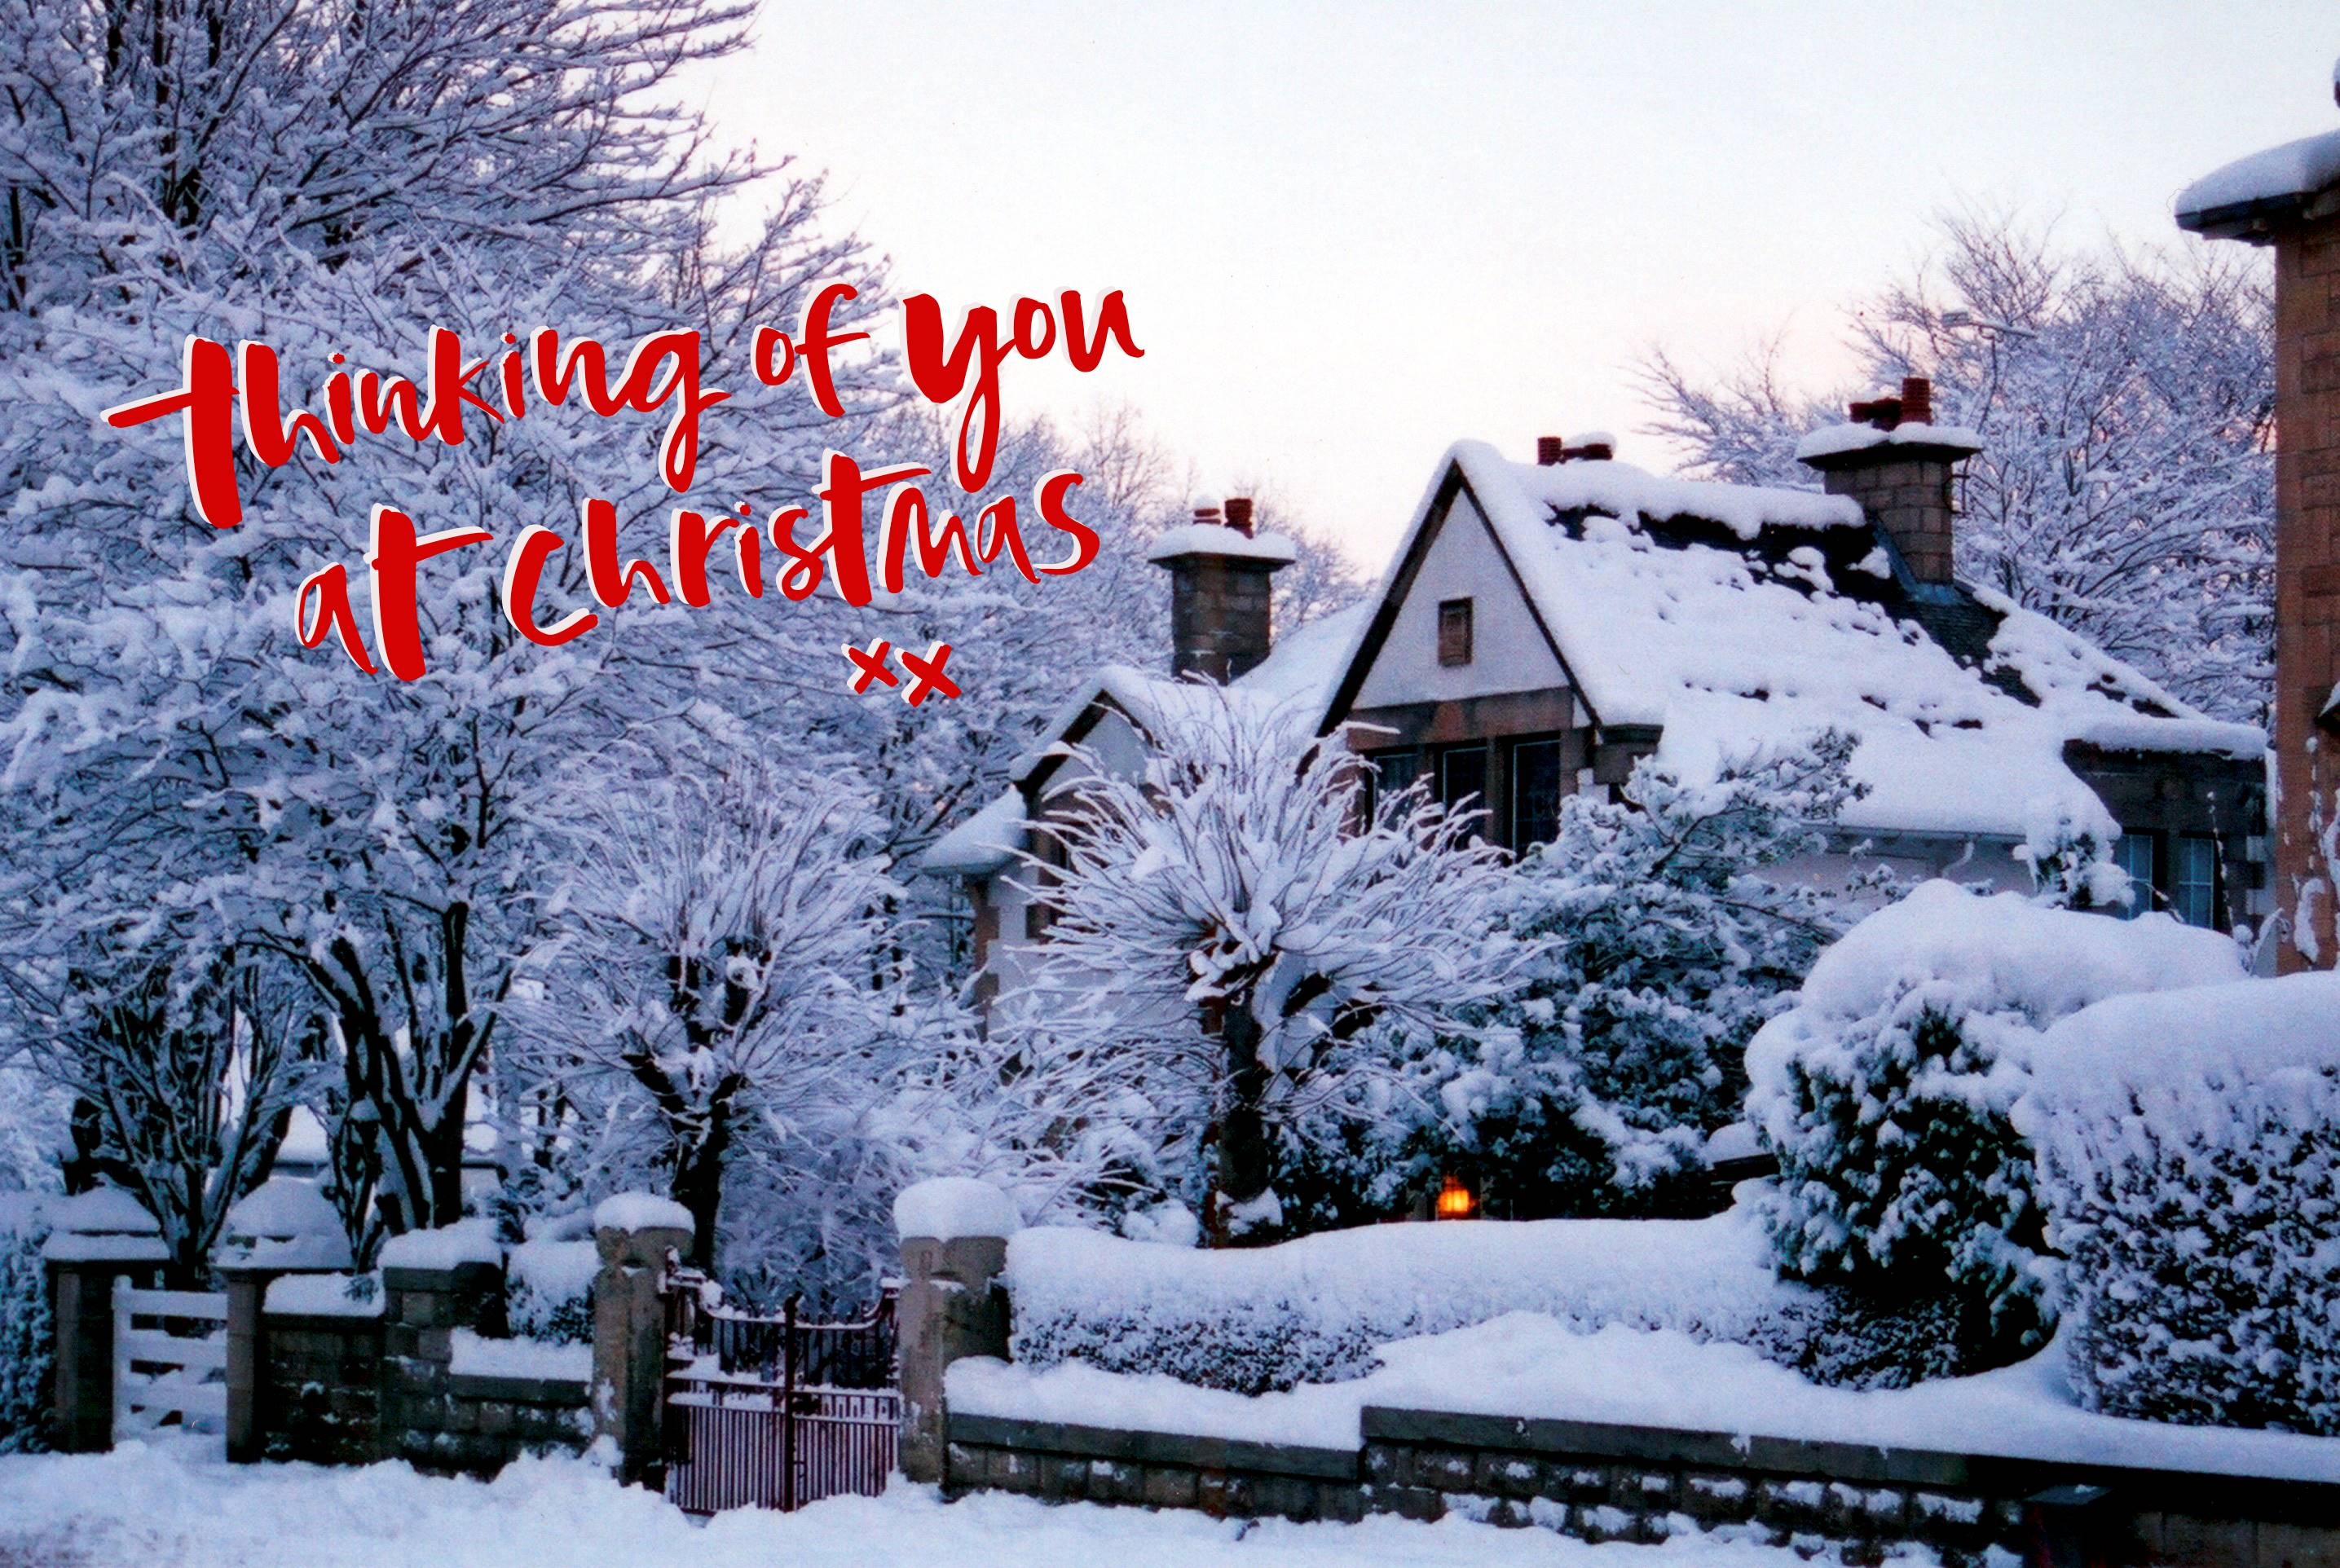 'Thinking of you at Christmas' Inspired by an original photograph by James McKillop. Design by Toowordy.